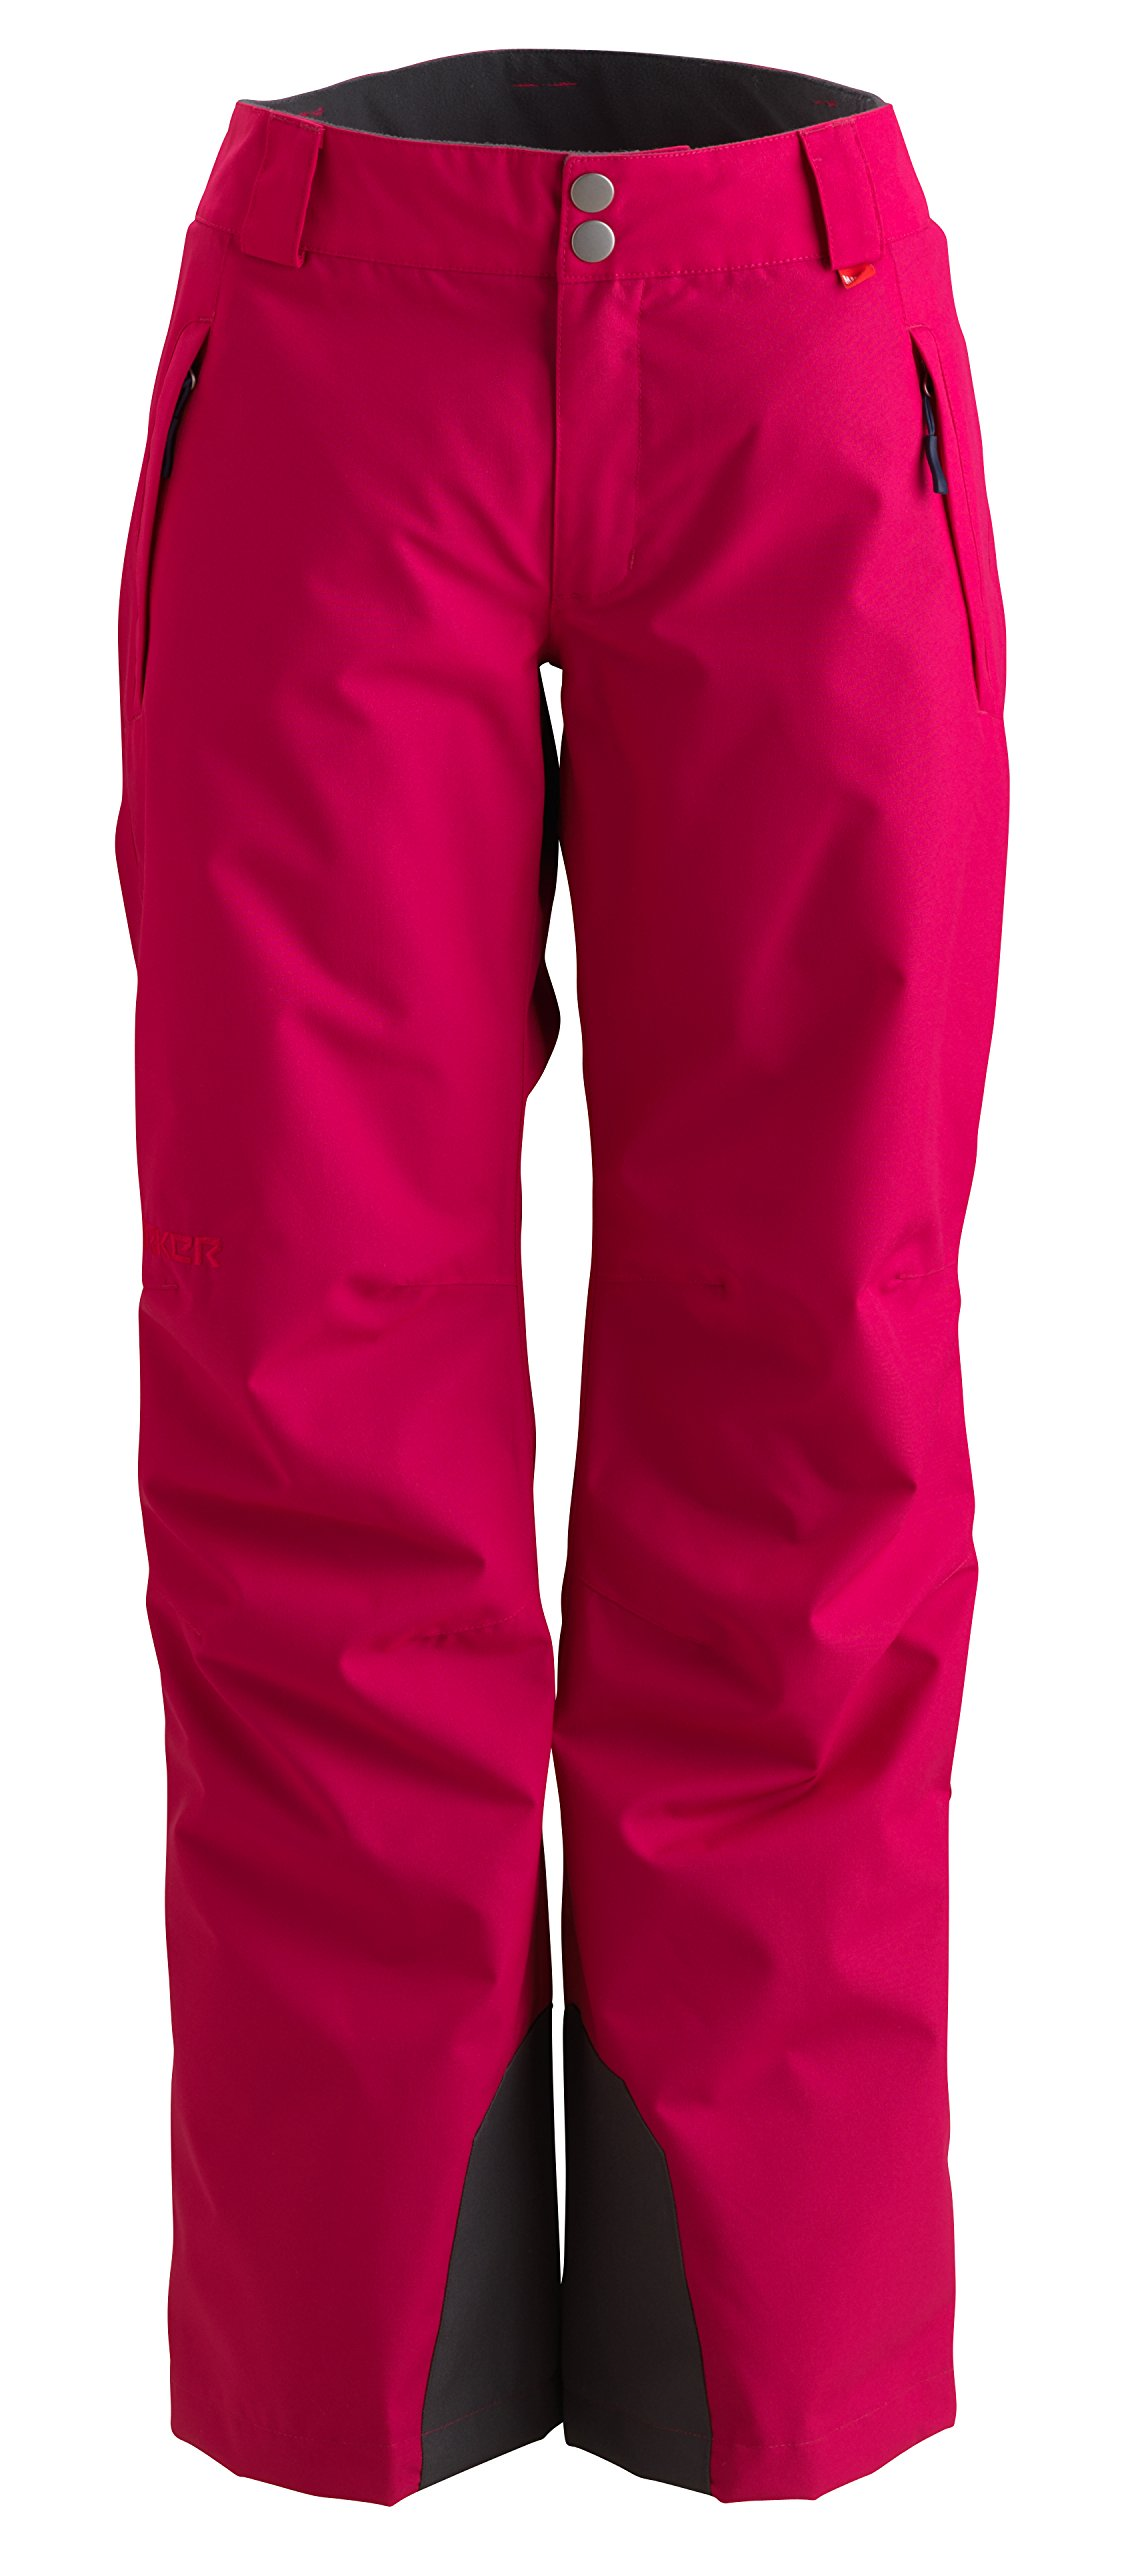 Marker Women's Stampede Shell Pants, Large, Bright Rose